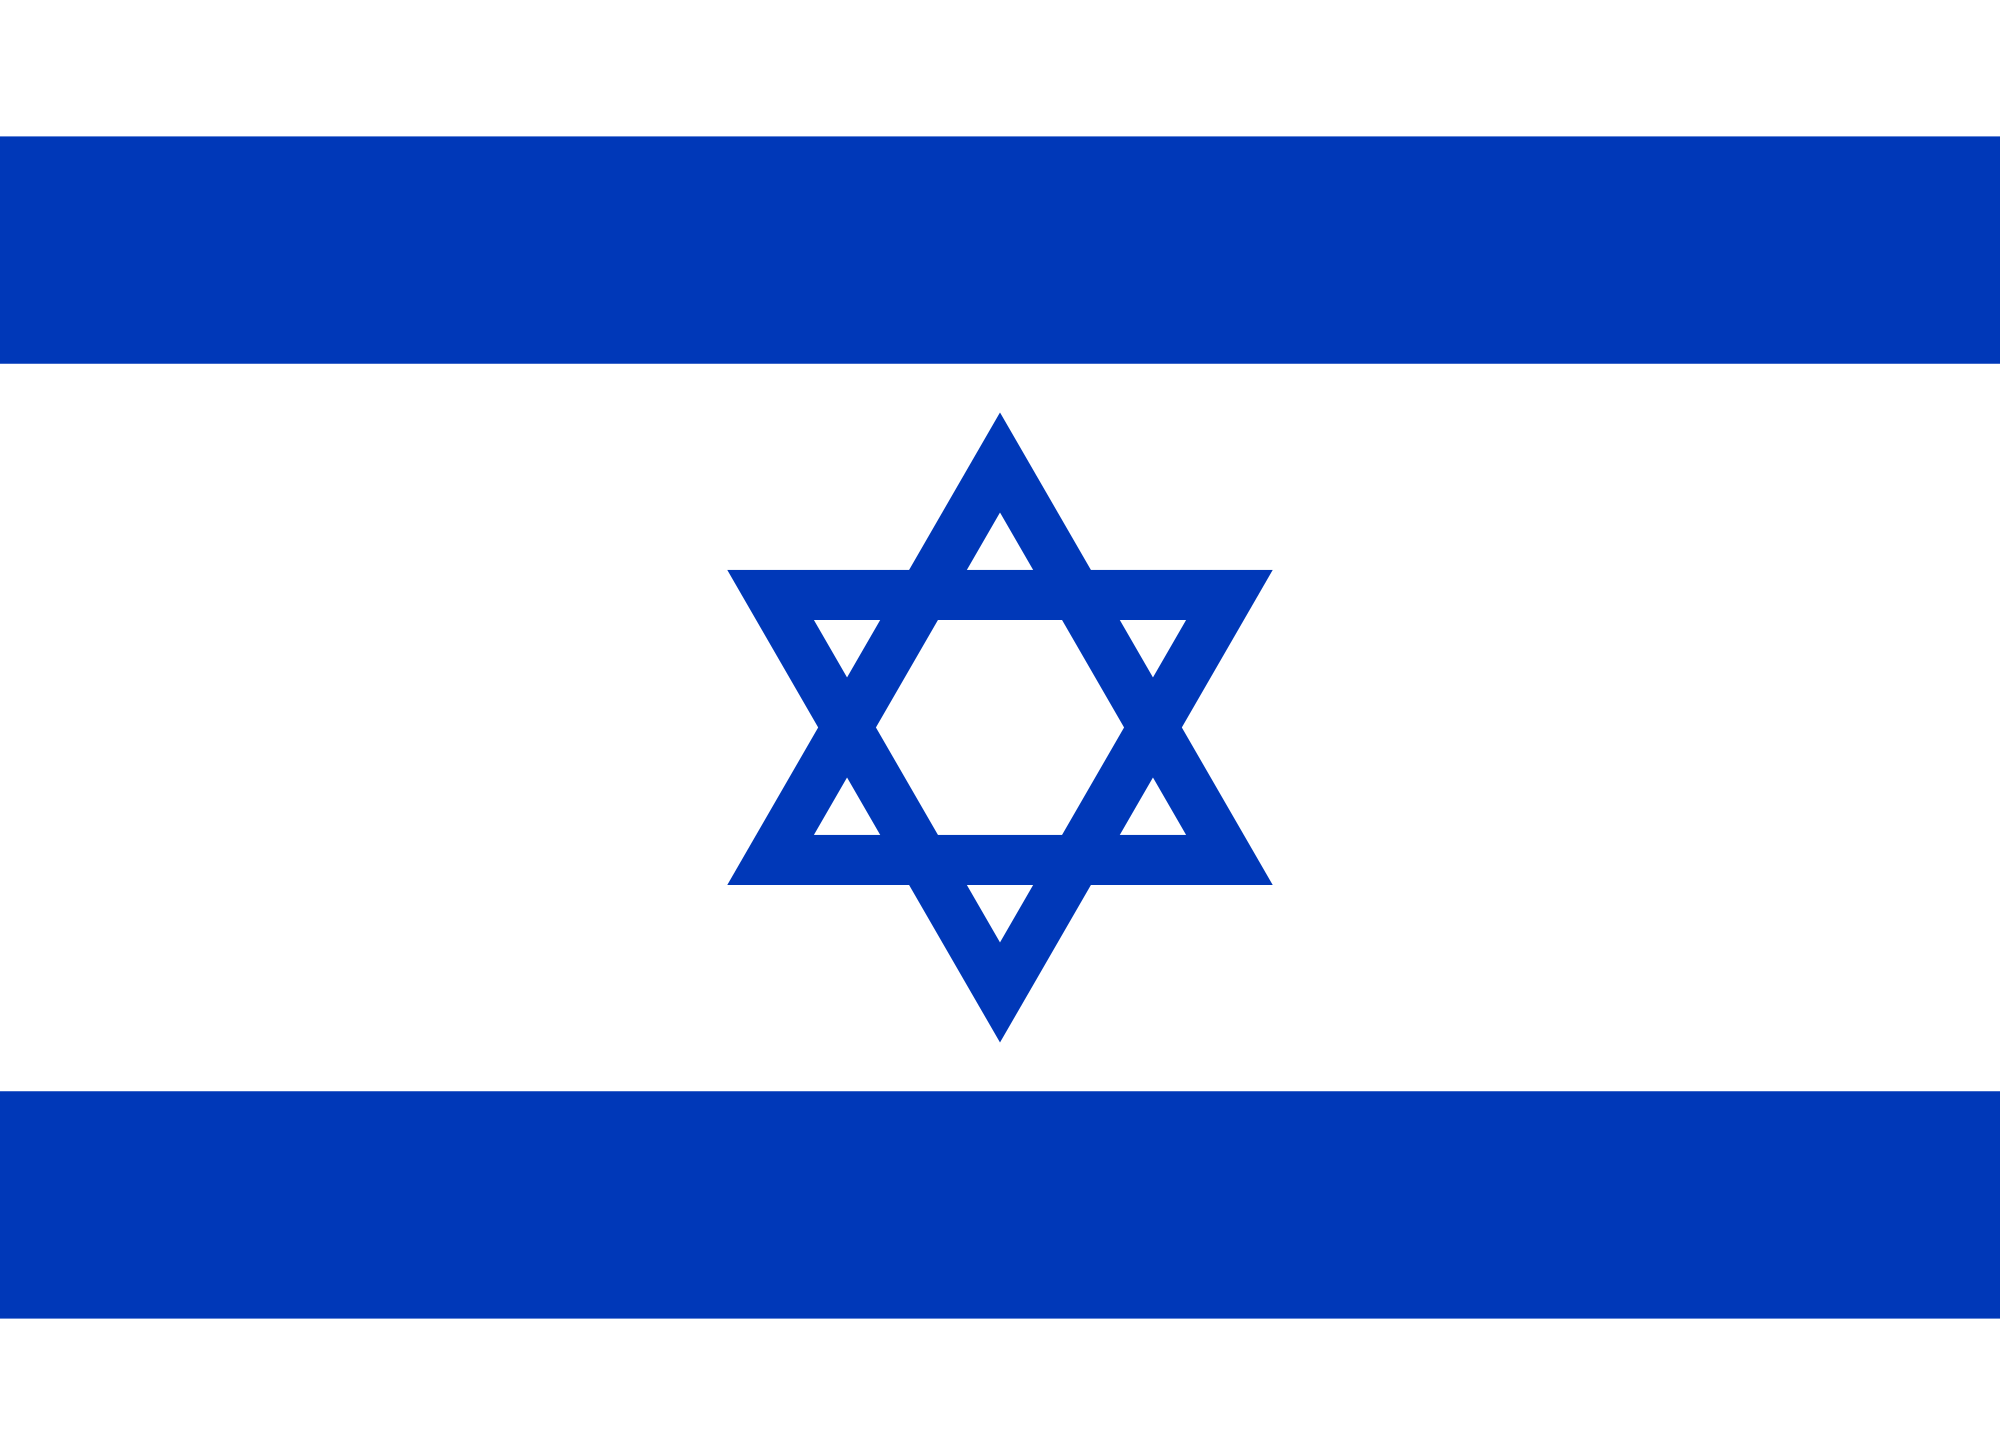 - Israel flag - 13 February 2018 – FinTech Futures